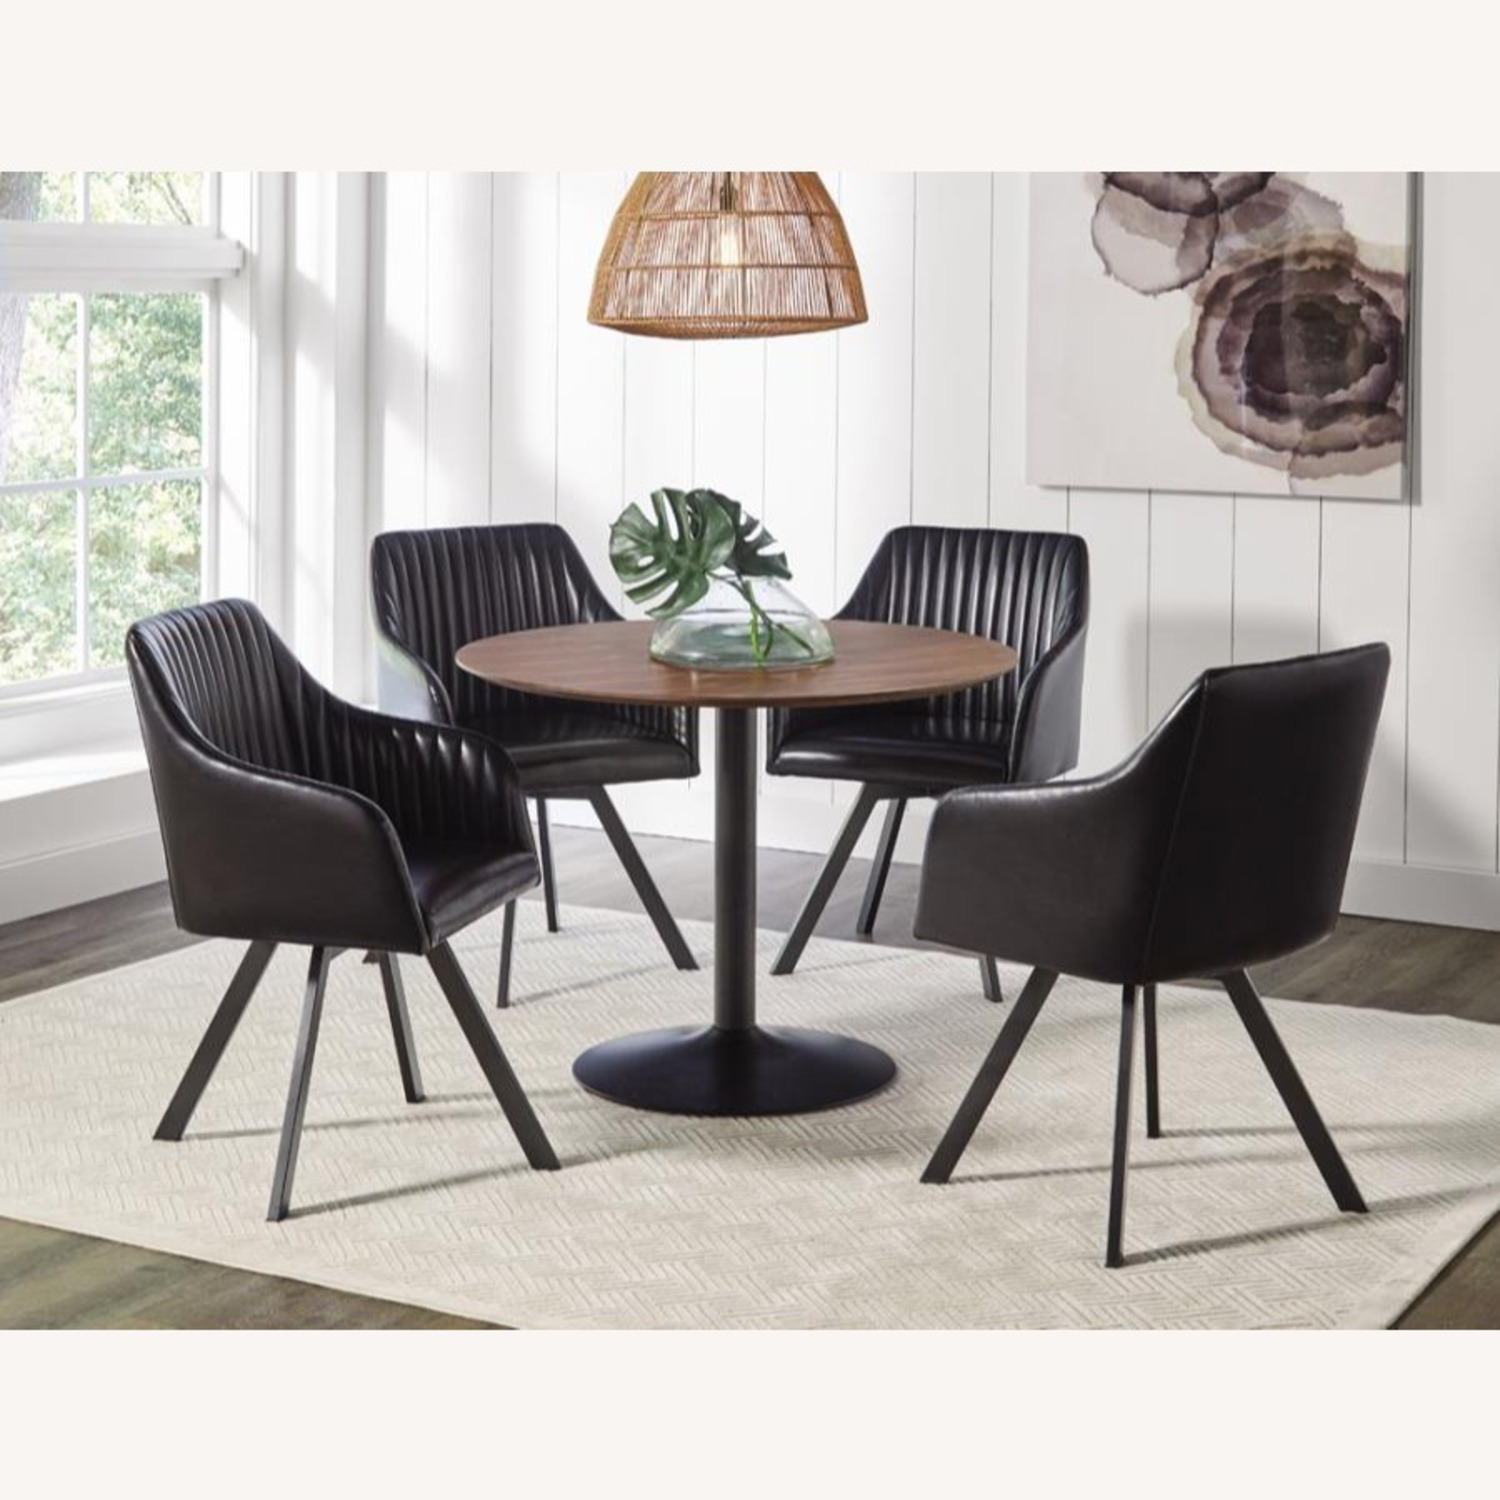 Swivel Dining Chair In Black Leatherette Finish - image-2